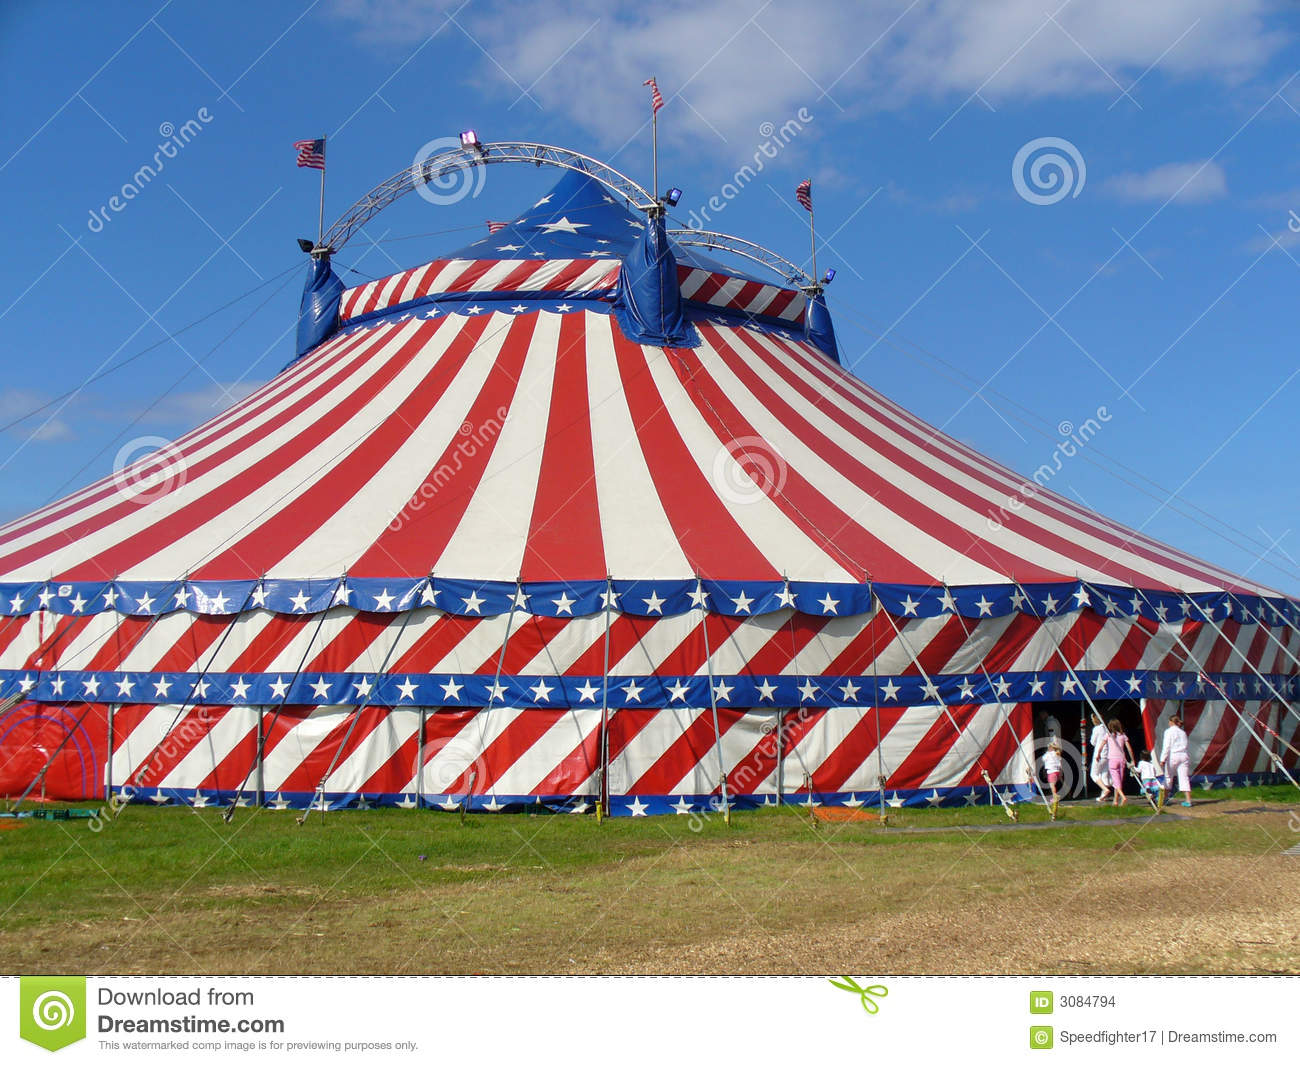 Circus Big Top Tent. Entertainment marquee. & Circus Big Top Tent stock photo. Image of tent entertainment ...